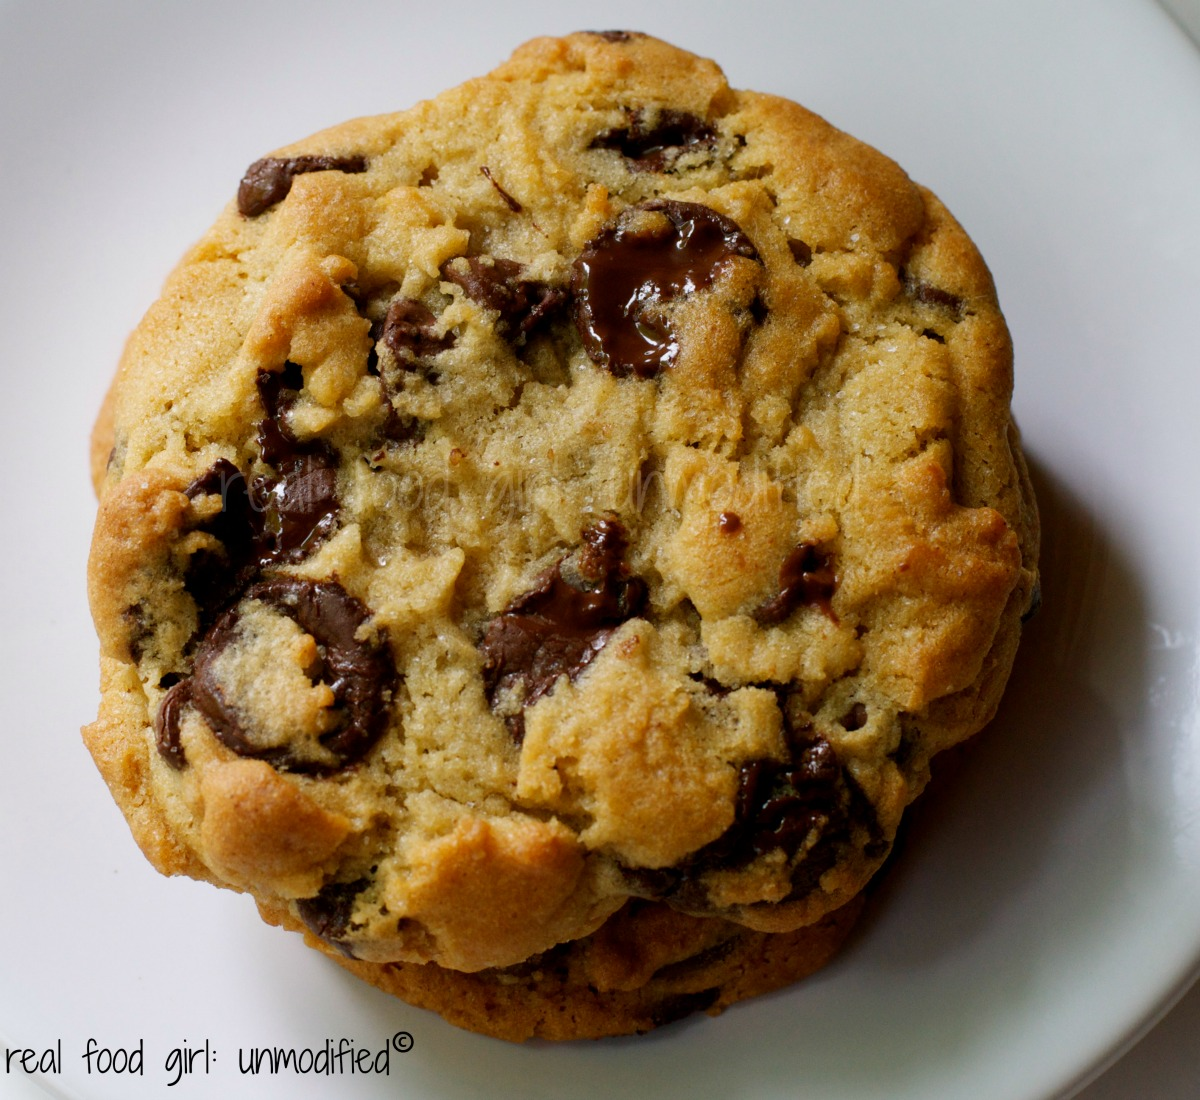 The Quest for the Best Chocolate Chip Cookie | Real Food Girl